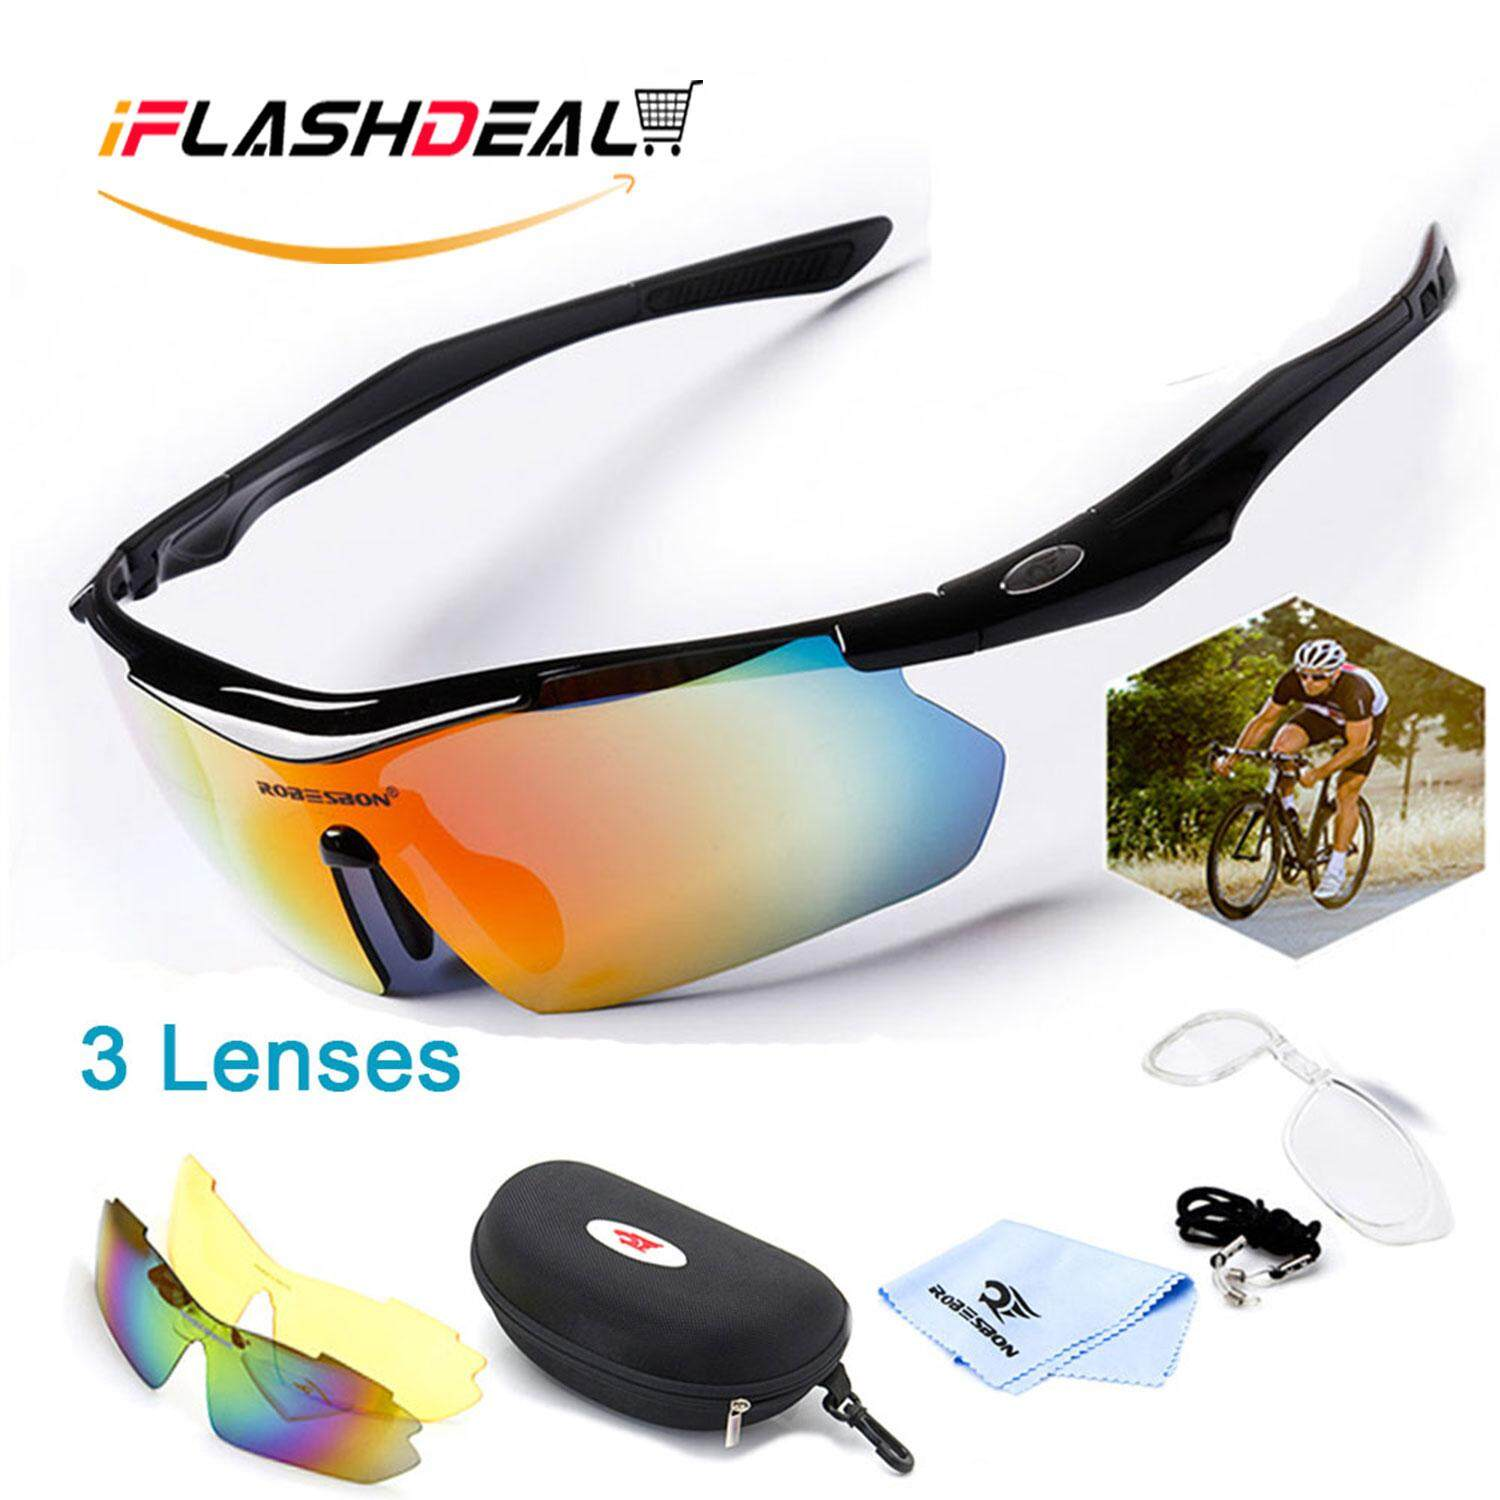 b4ea29bb9e3 iFlashDeal Global Express Delivery within 72 days Men Sports Sunglasses  Outdoor Sport Driving Male